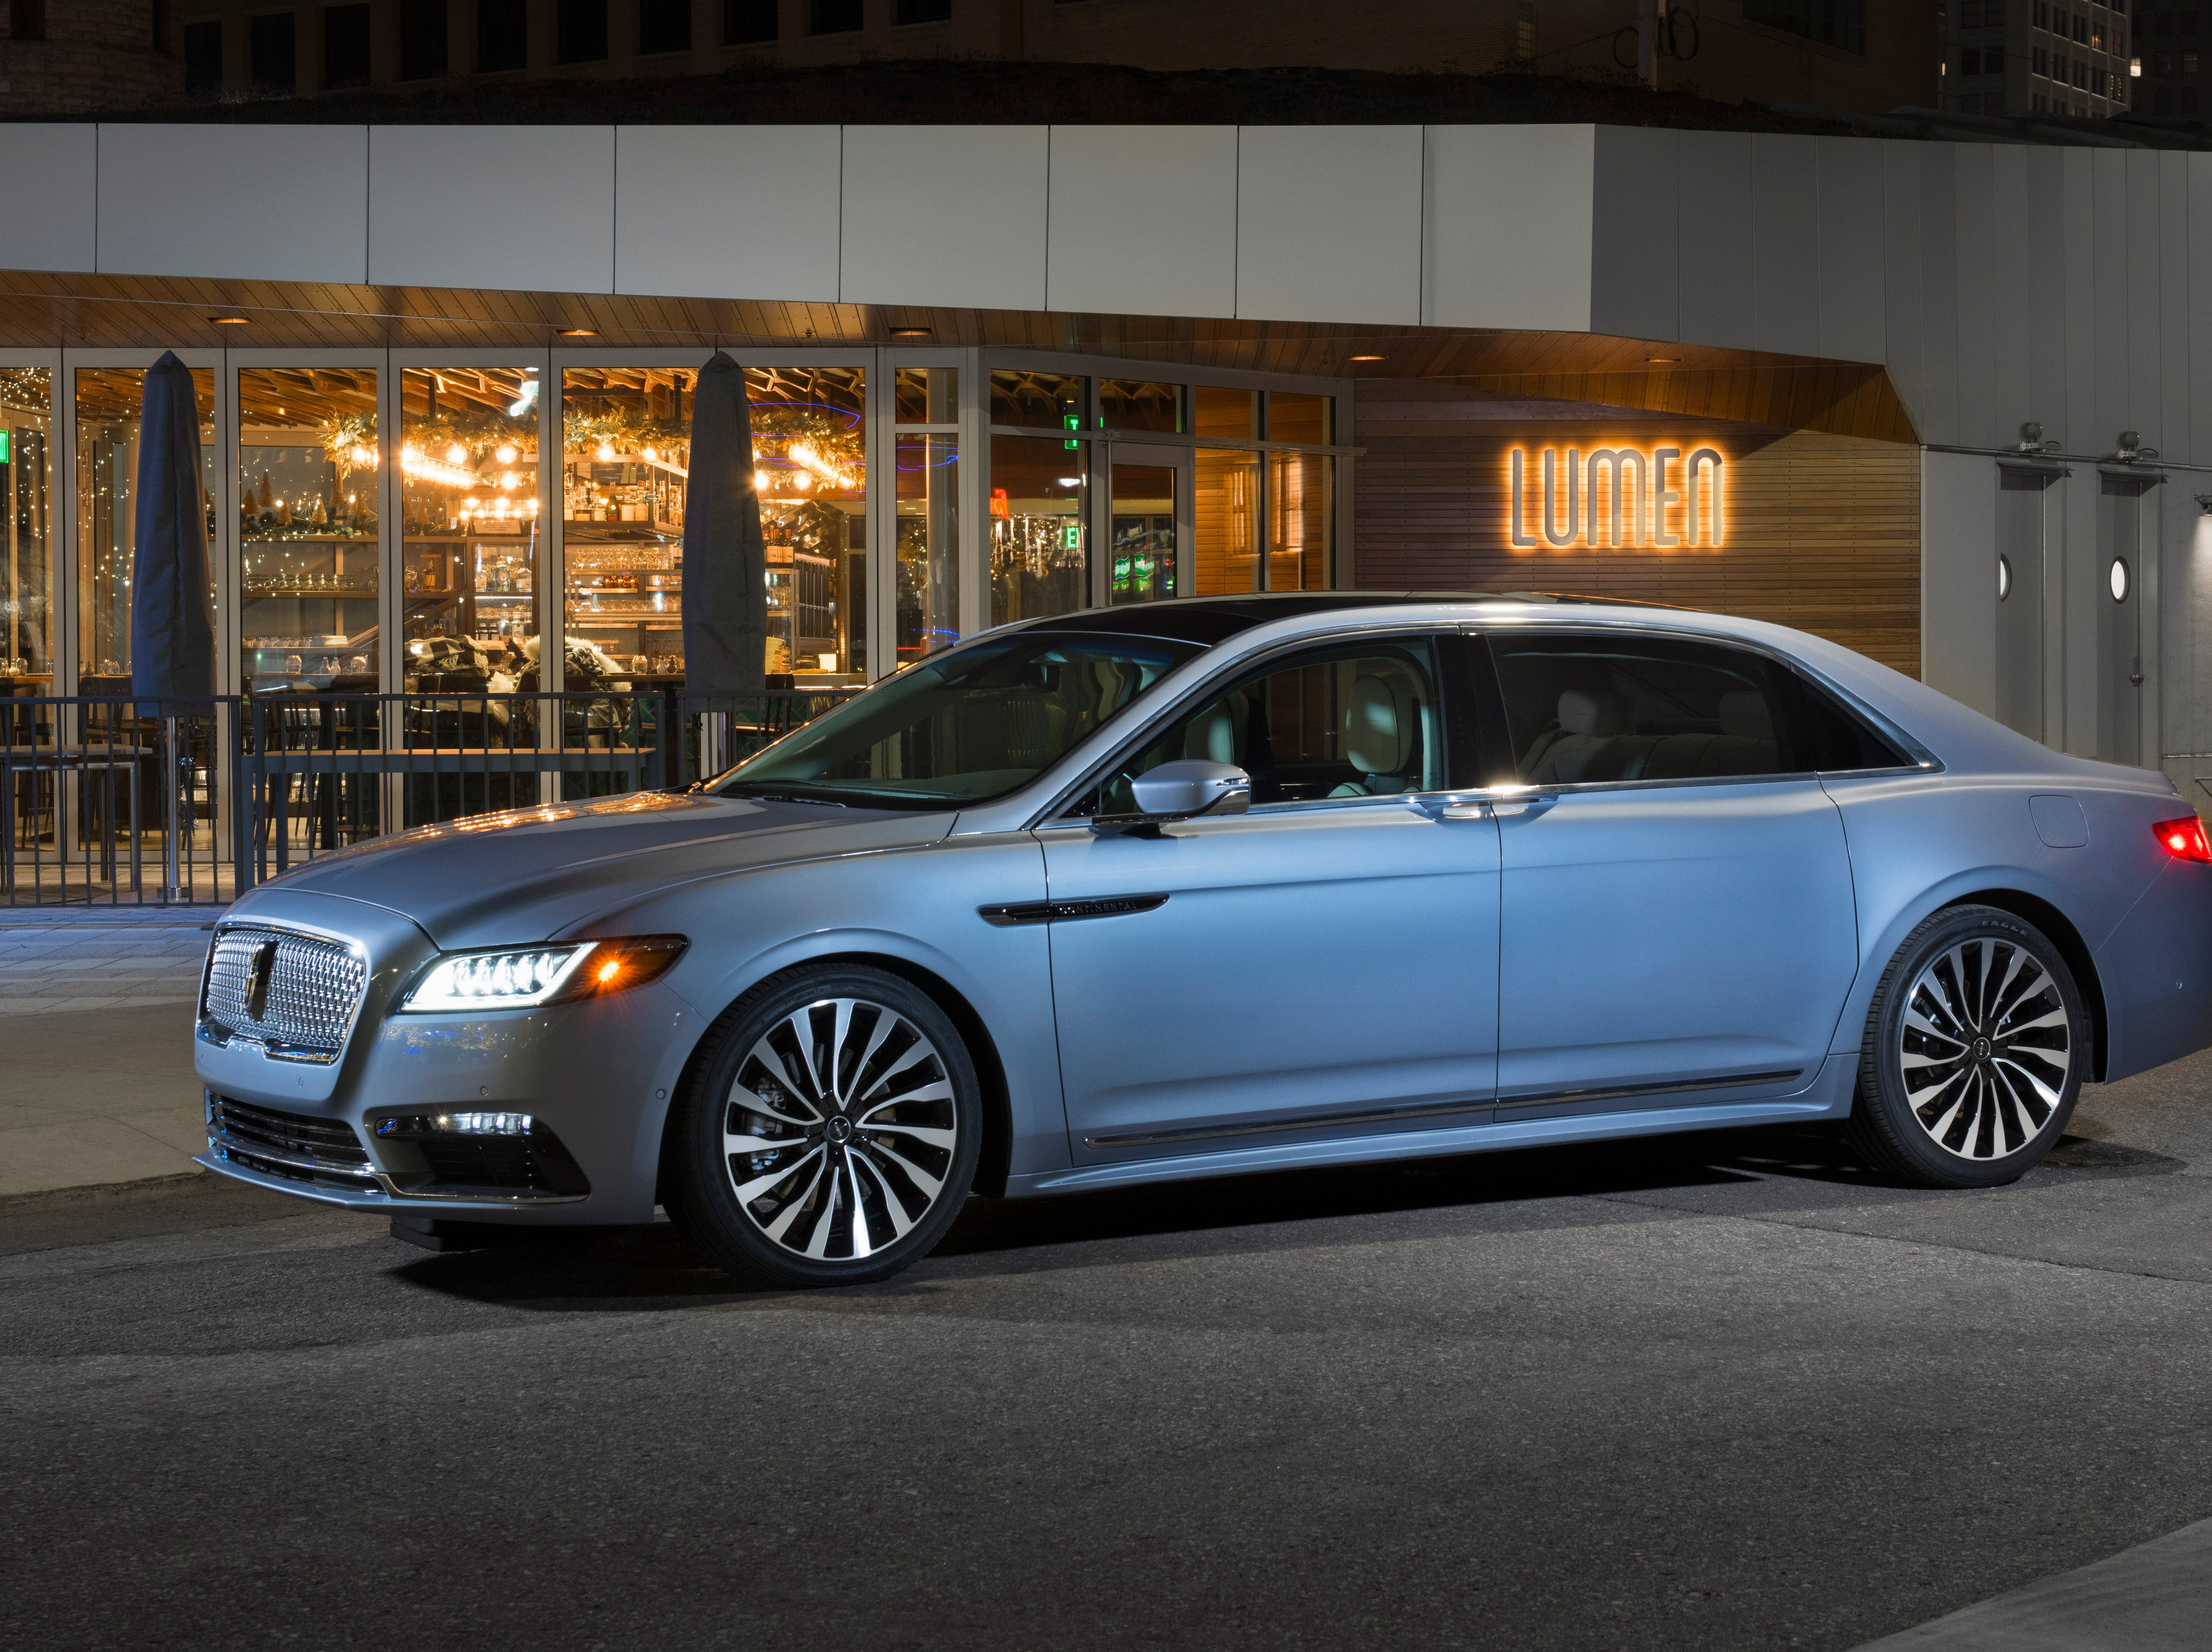 There won't be a formal application process, but anyone who wants the vehicles will have to work with a Lincoln dealer to get their hands on one.